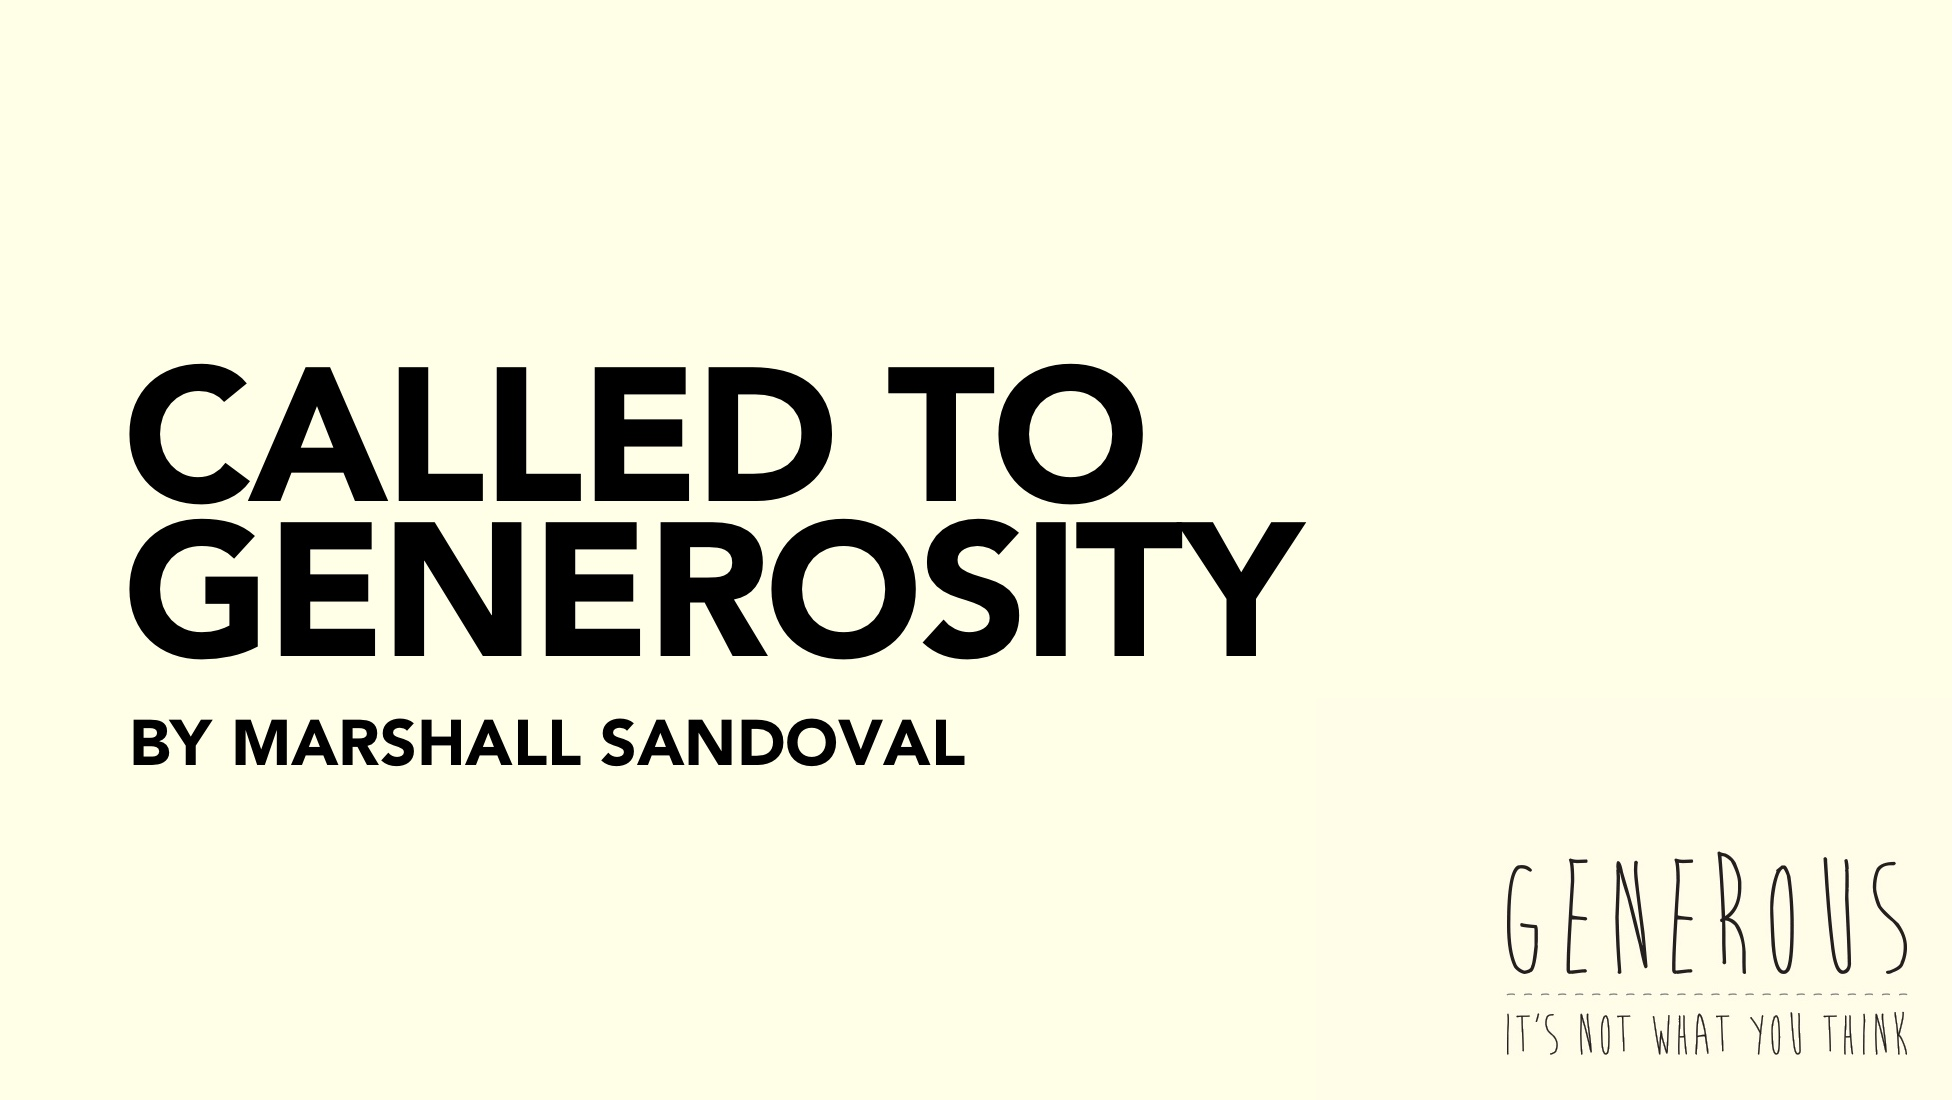 Called to Generosity by Marshall Sandoval